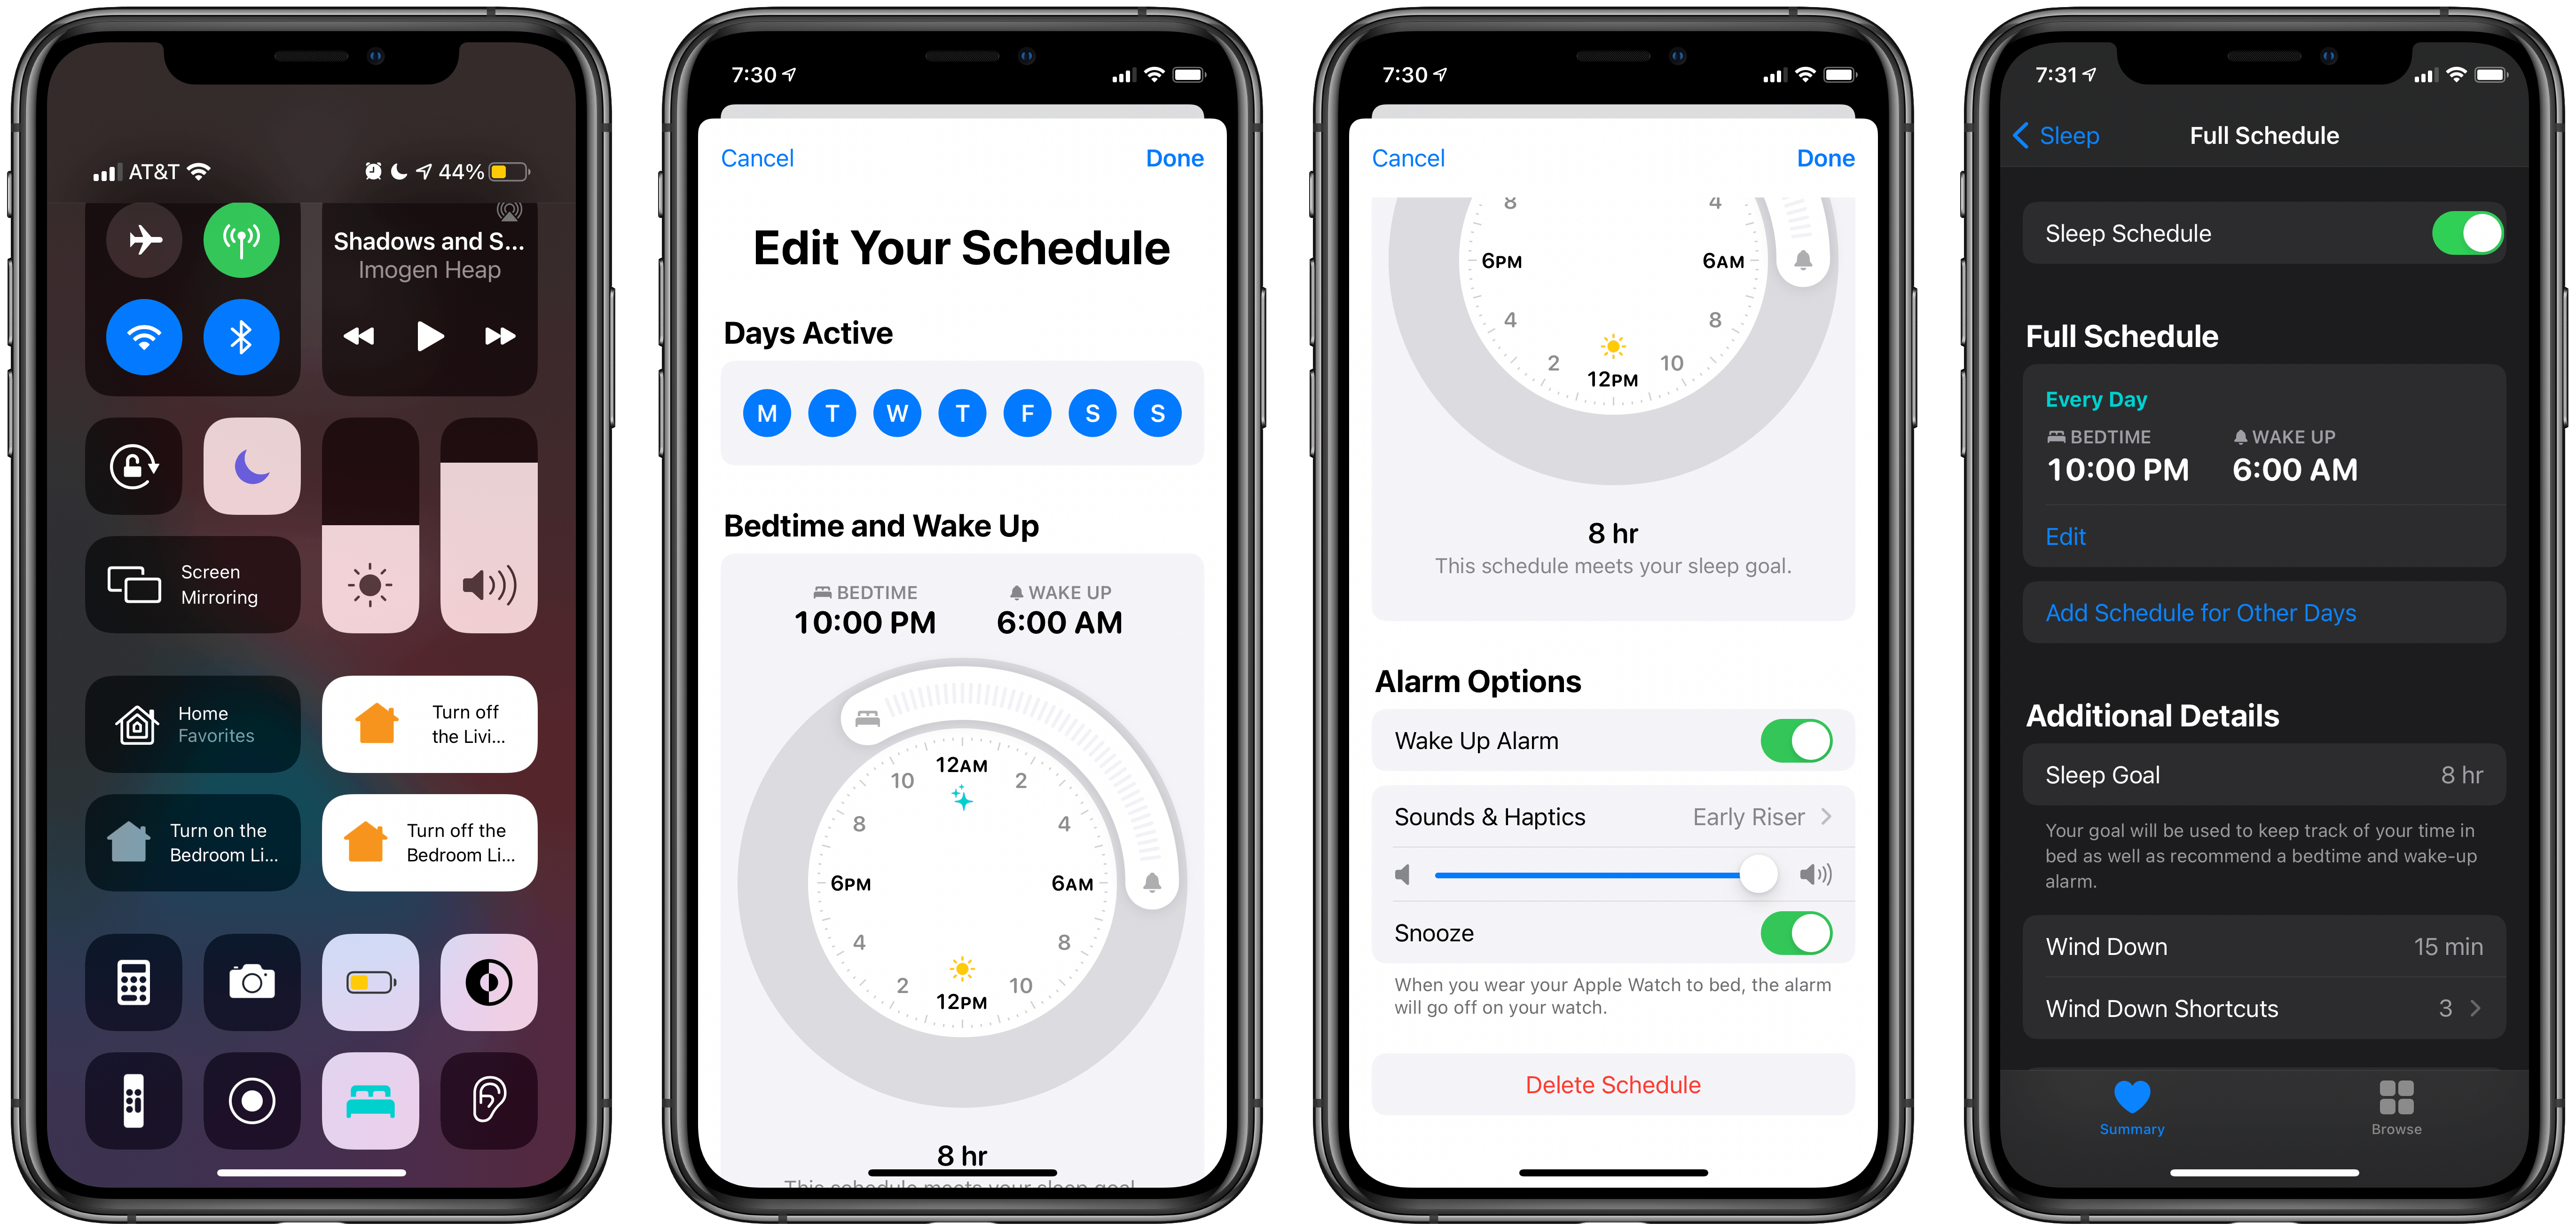 Toggling sleep mode in Control Center (left) and setting up a sleep schedule.